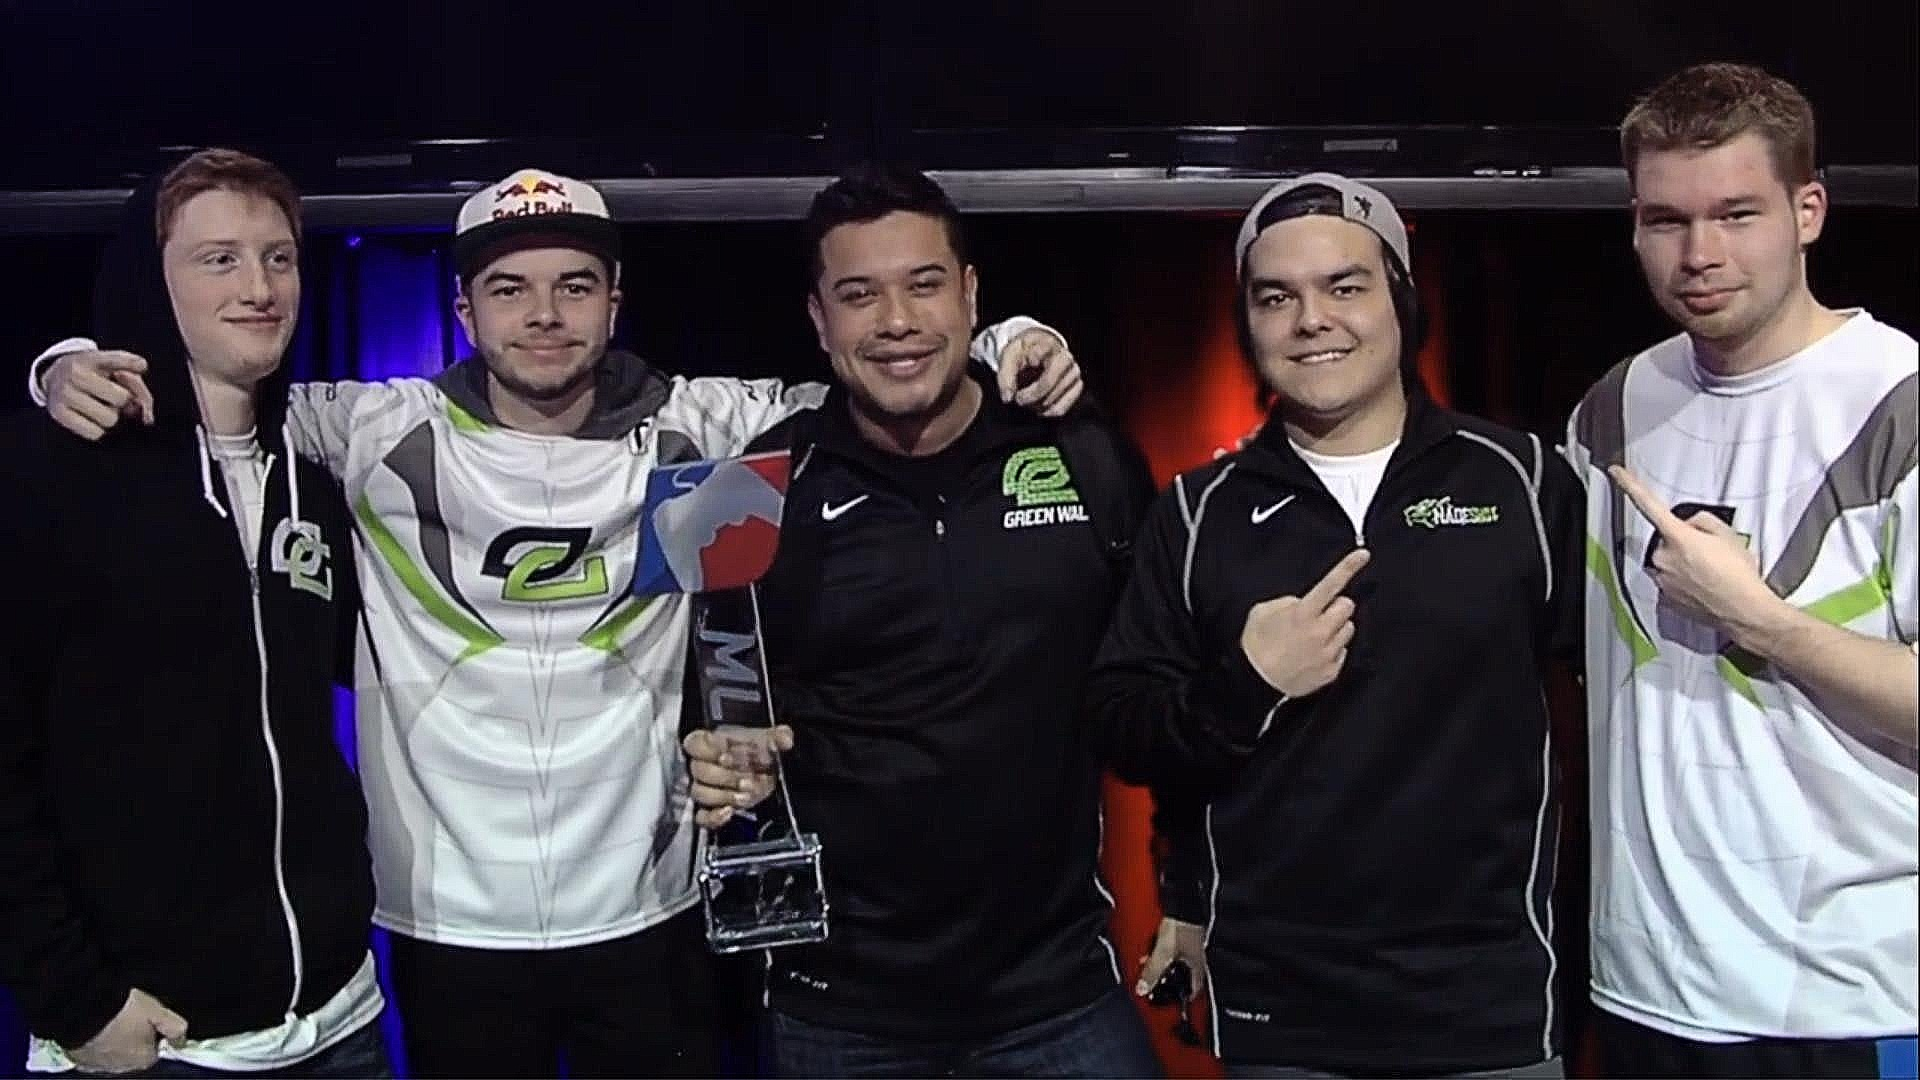 OpTic Gaming MLG win 2015 Scump, Nadeshot, Hecz, Formal, Crimsix